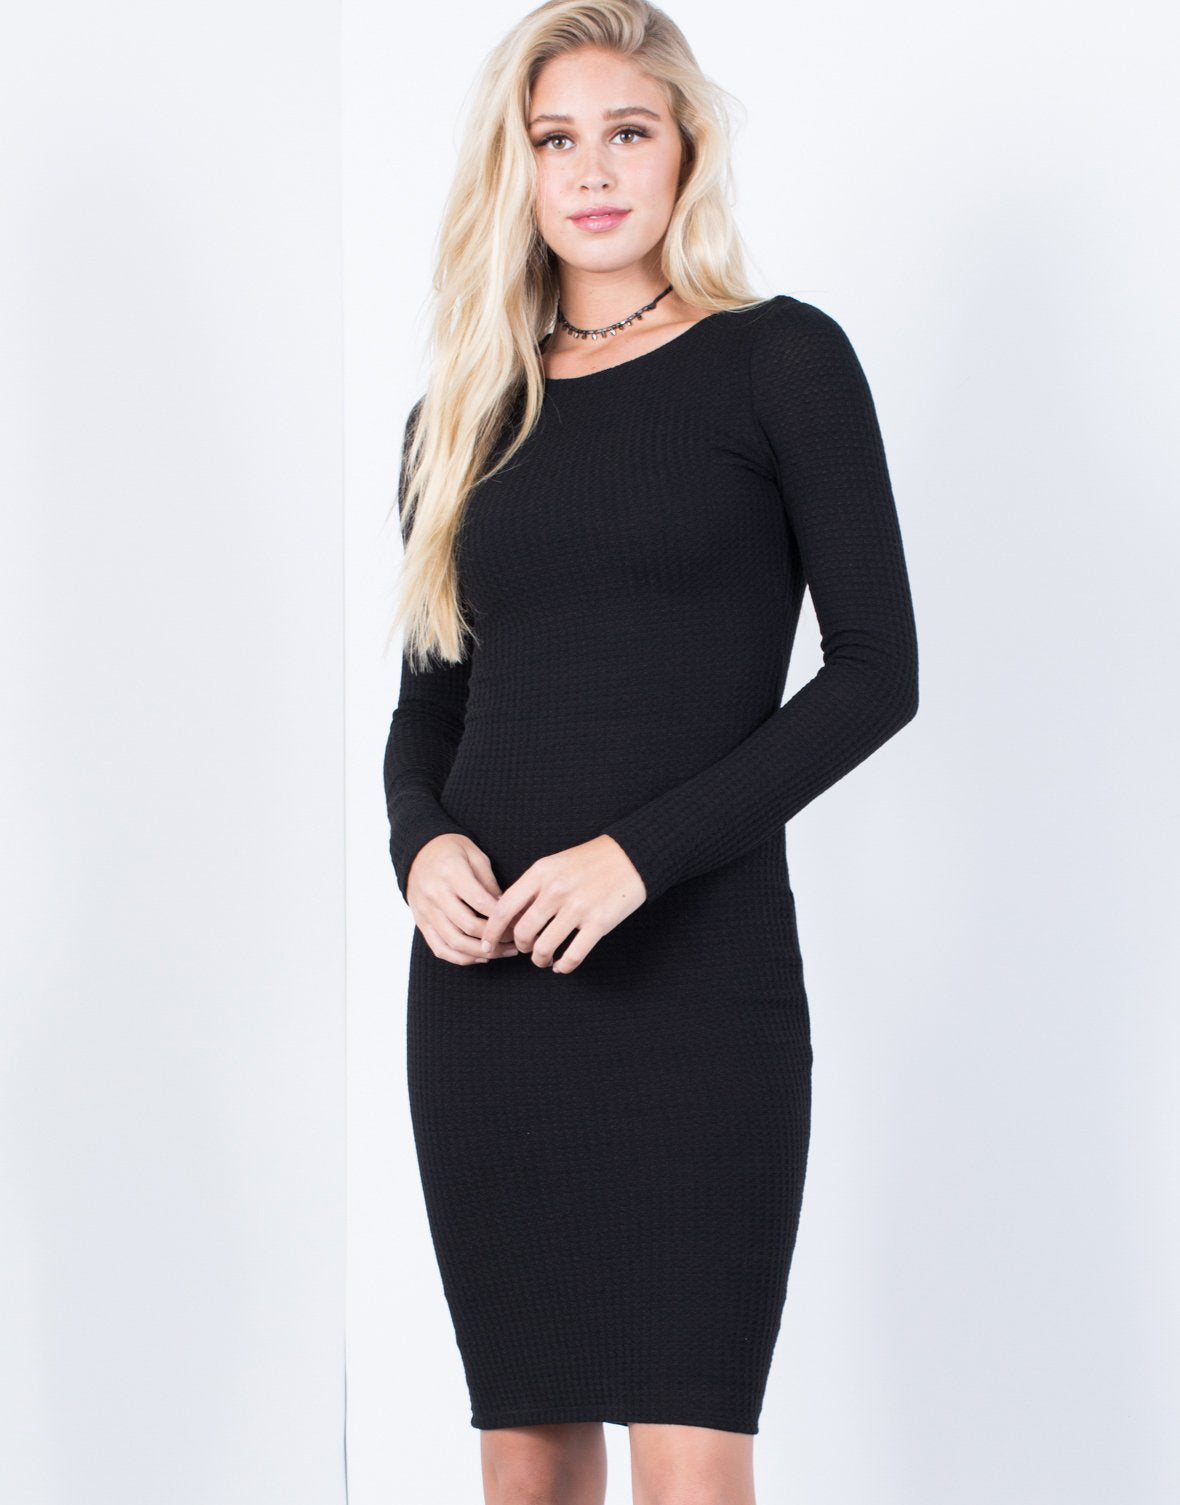 The Waffle Bodycon Dress